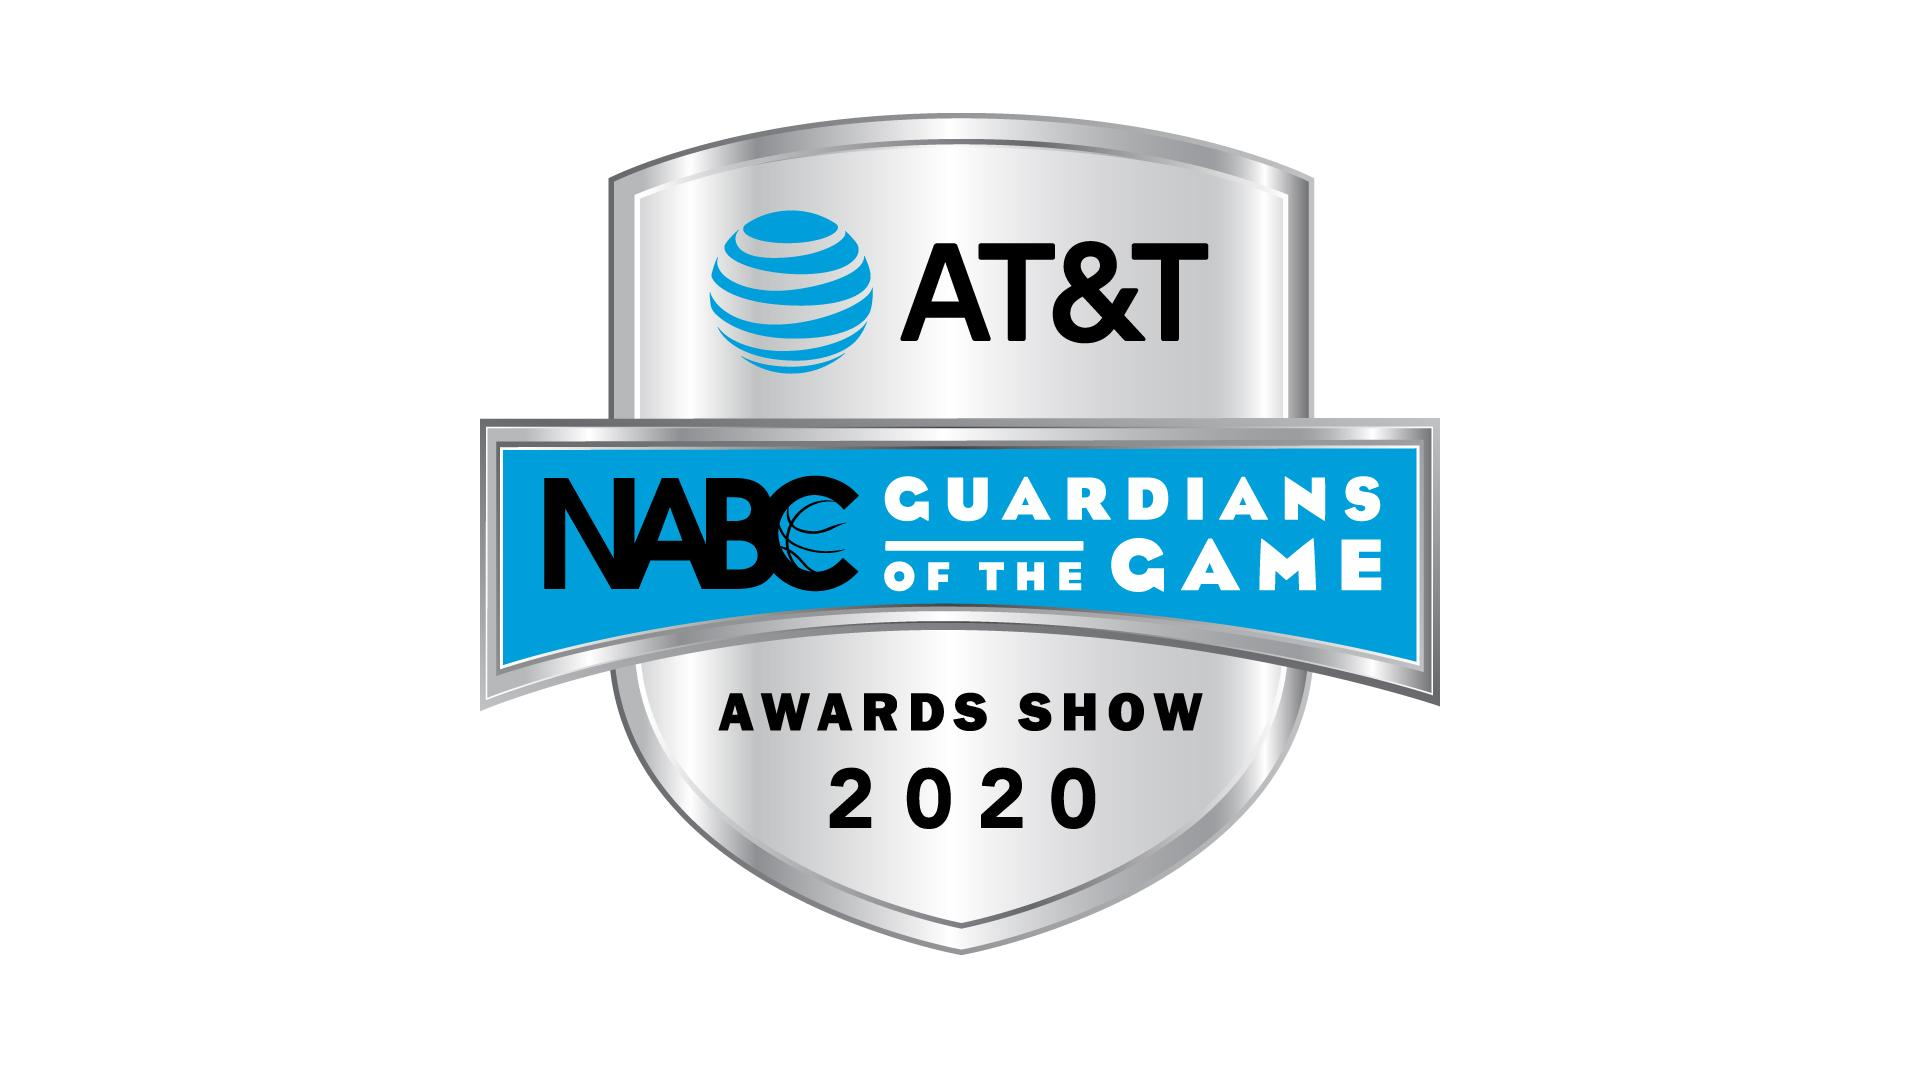 AT&T NABC Guardians of the Game Awards Show